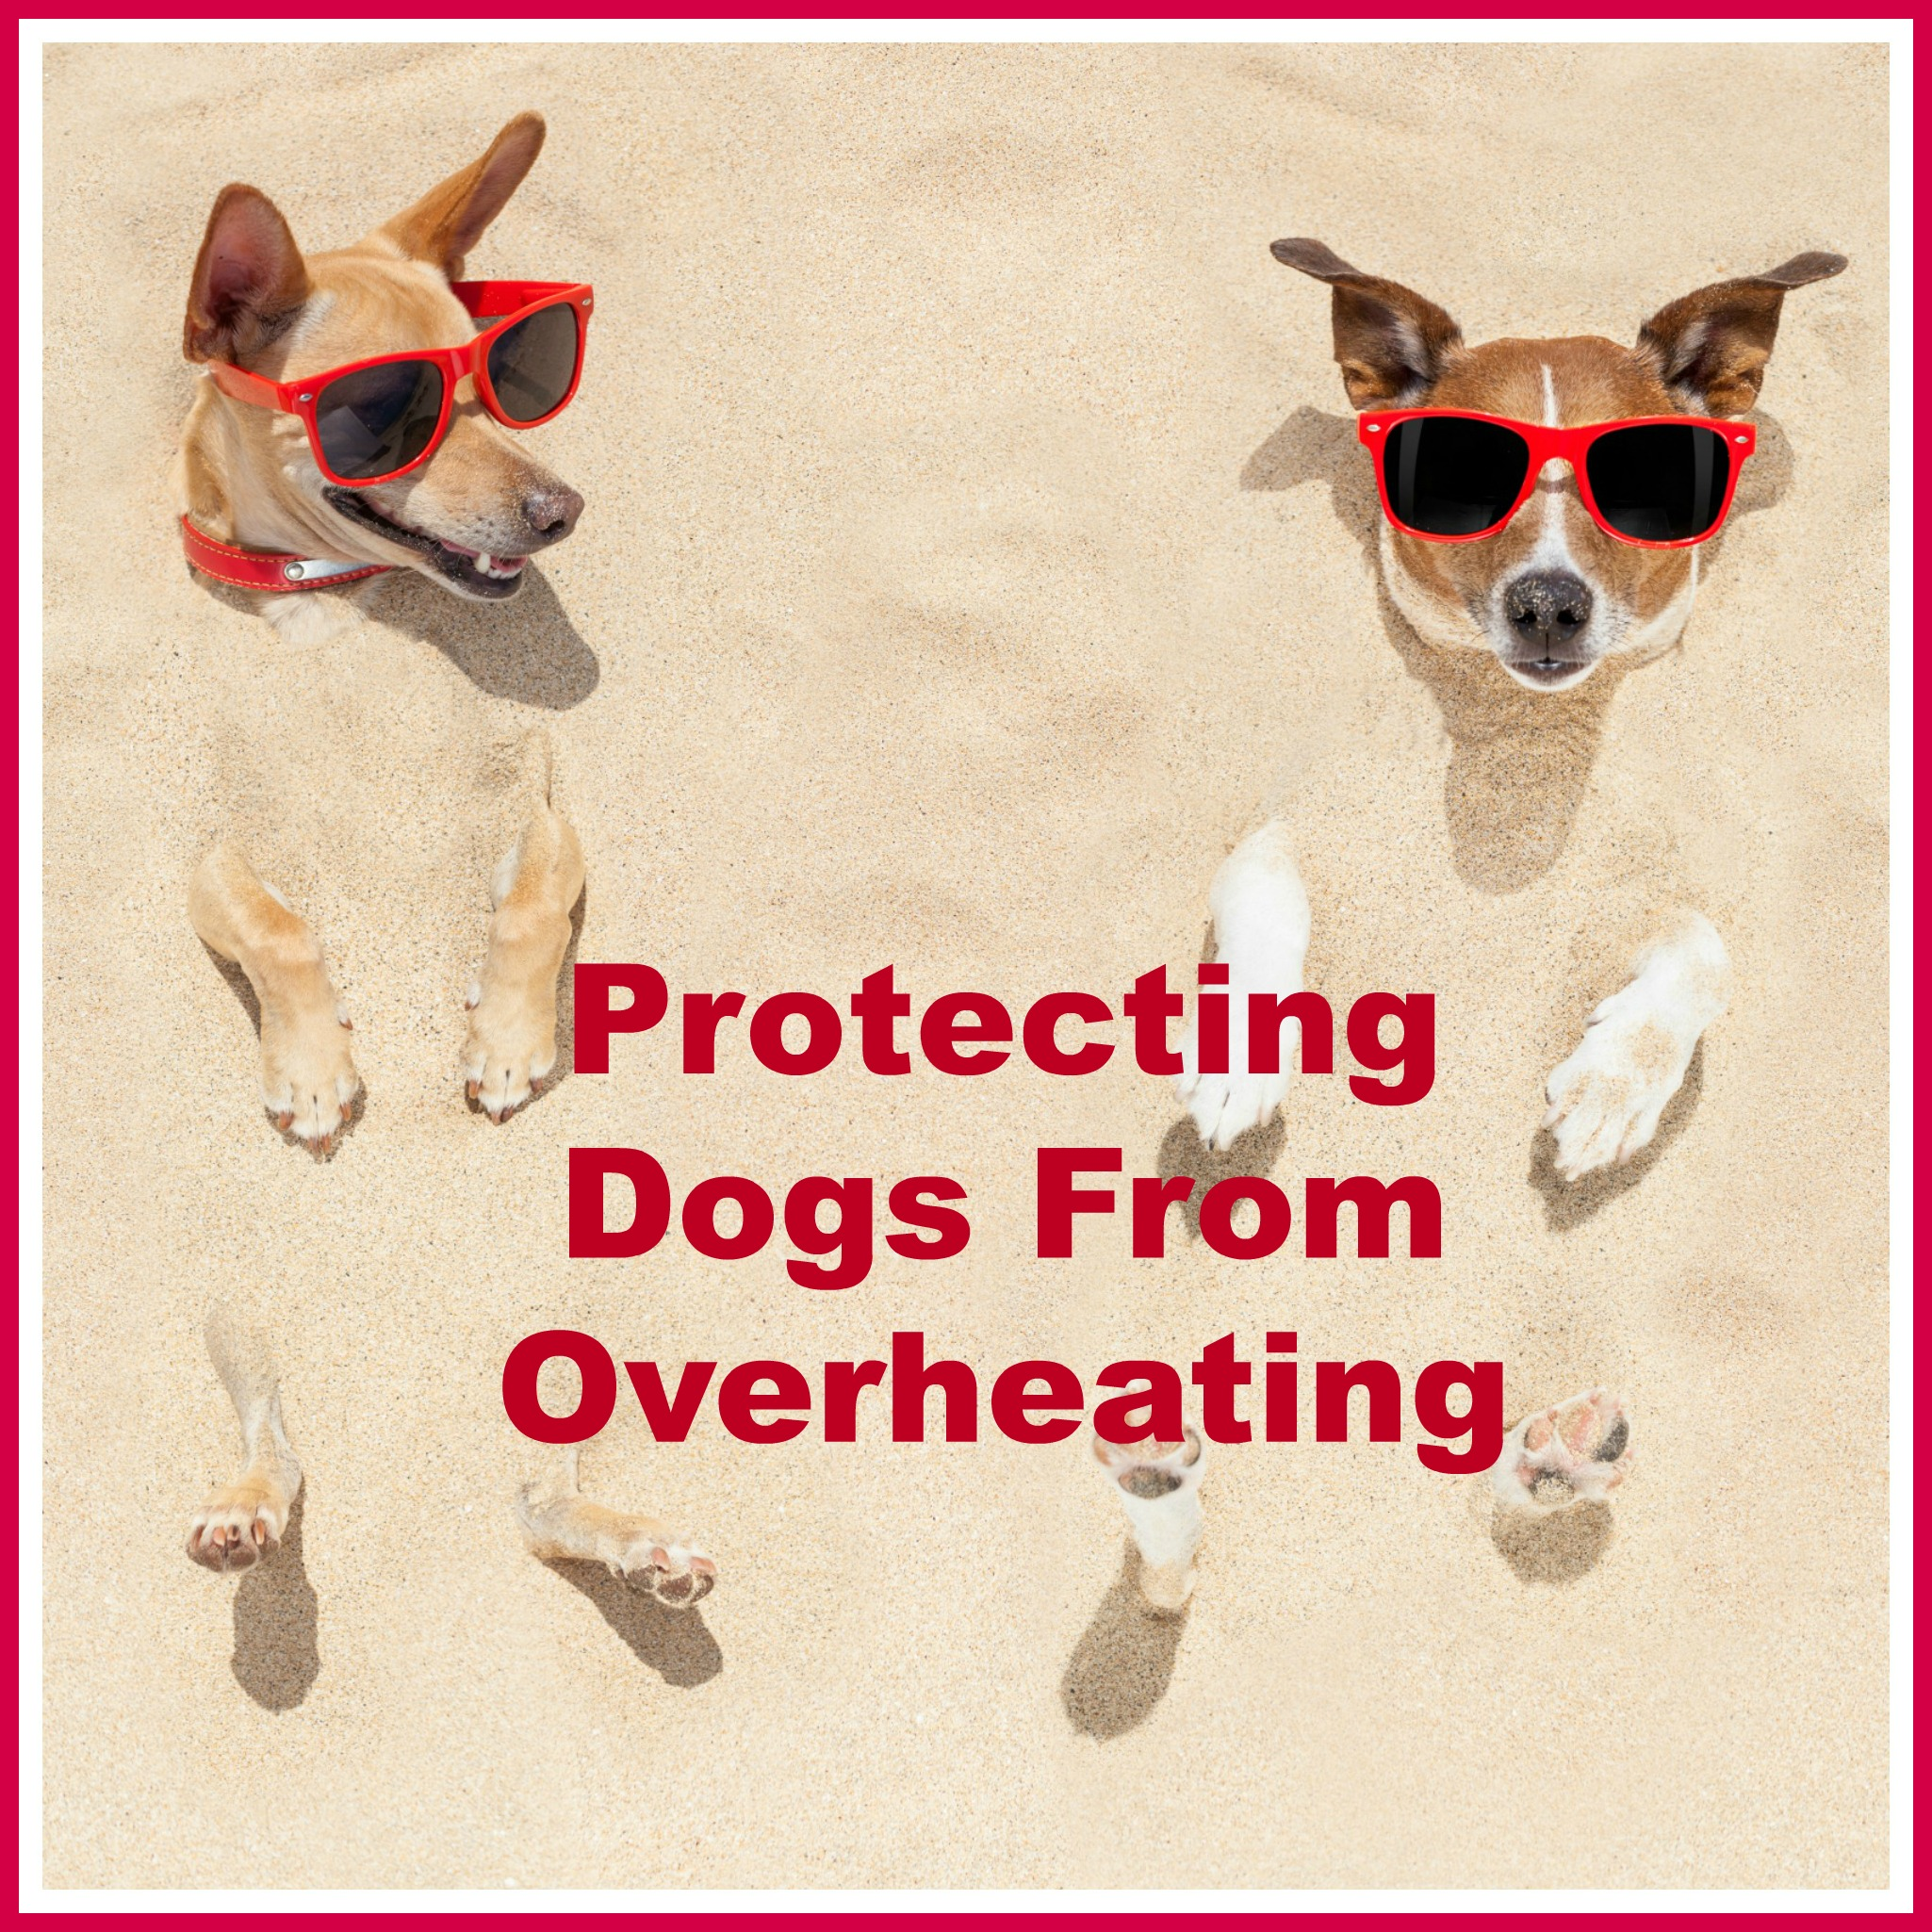 Protecting Dogs In The Heat Paws Right Here